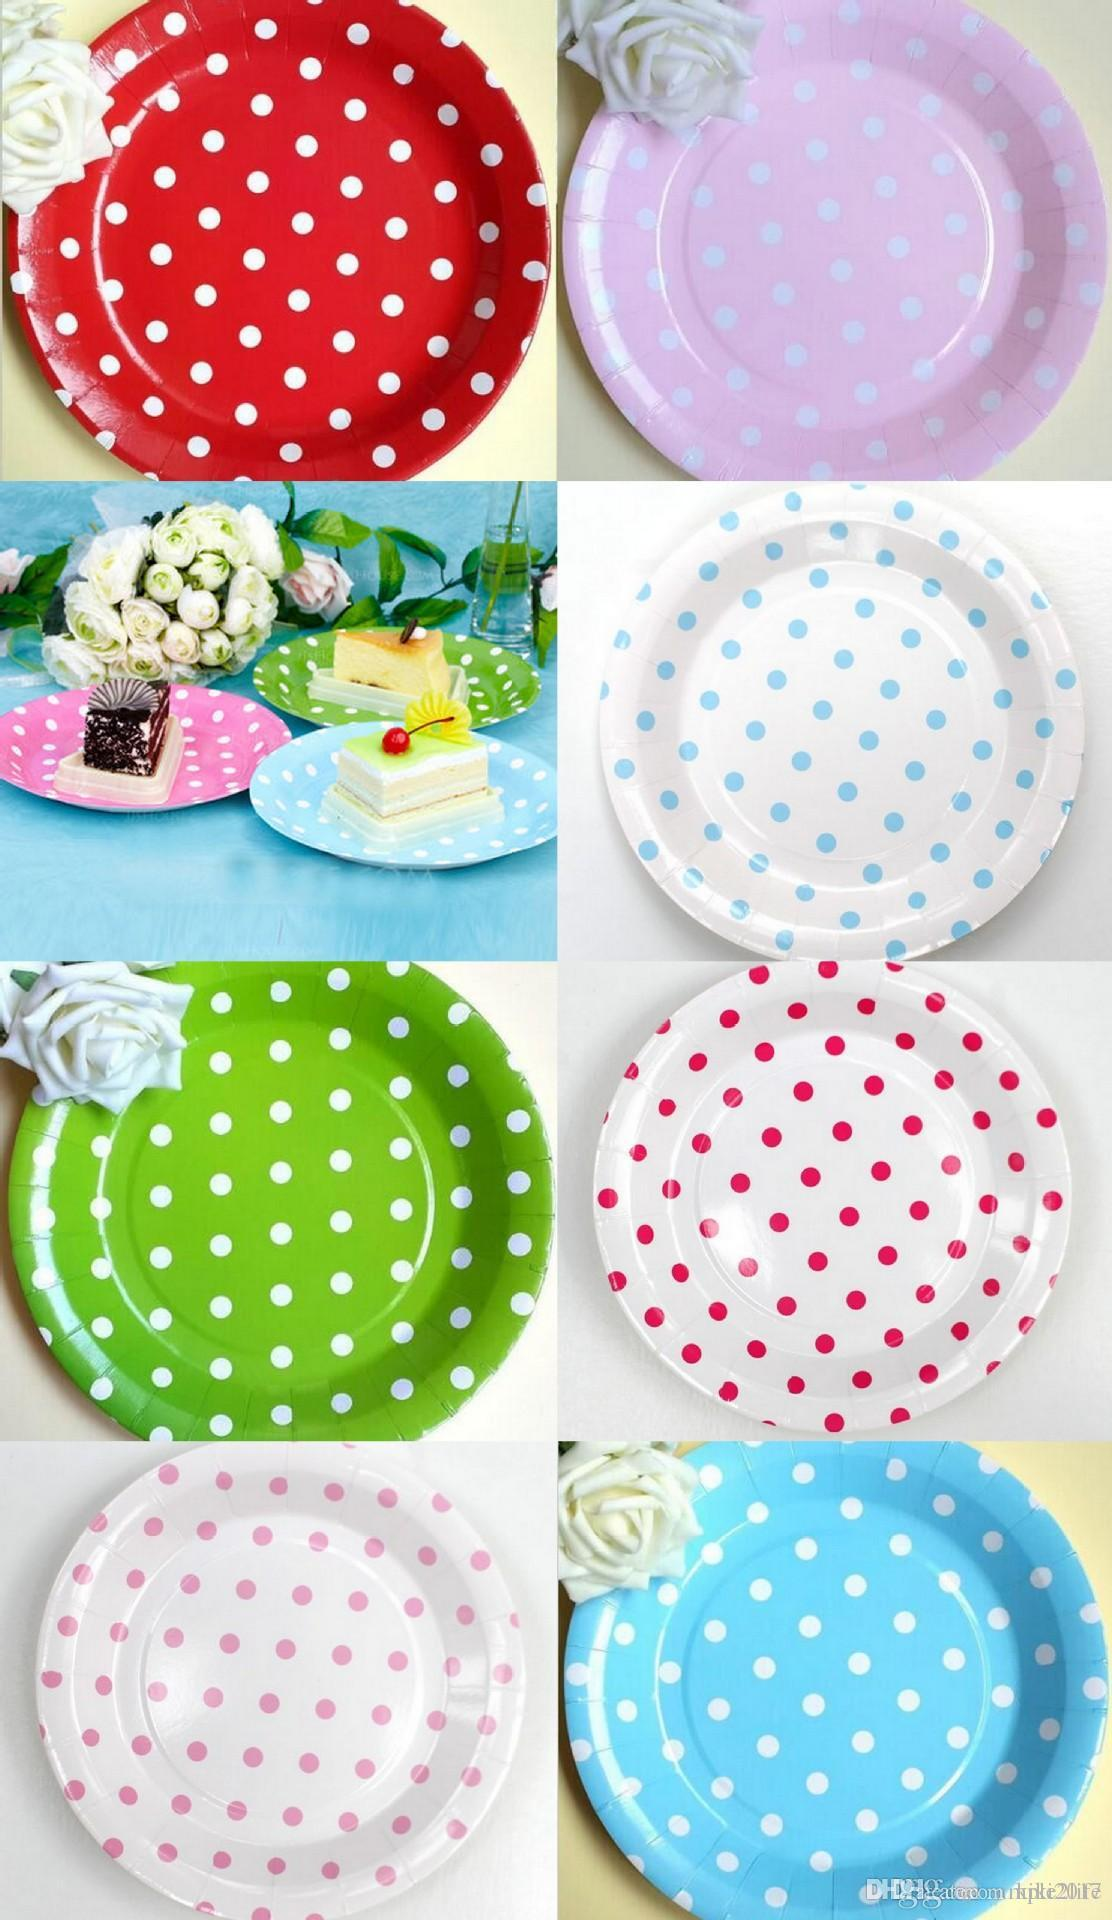 Best Quality 9 Inch Polka Dot Paper Disposable Plates For Party Birthday Paper Plates Decor Wedding Christams Supplies Tableware At Cheap Price ...  sc 1 st  DHgate.com & Best Quality 9 Inch Polka Dot Paper Disposable Plates For Party ...